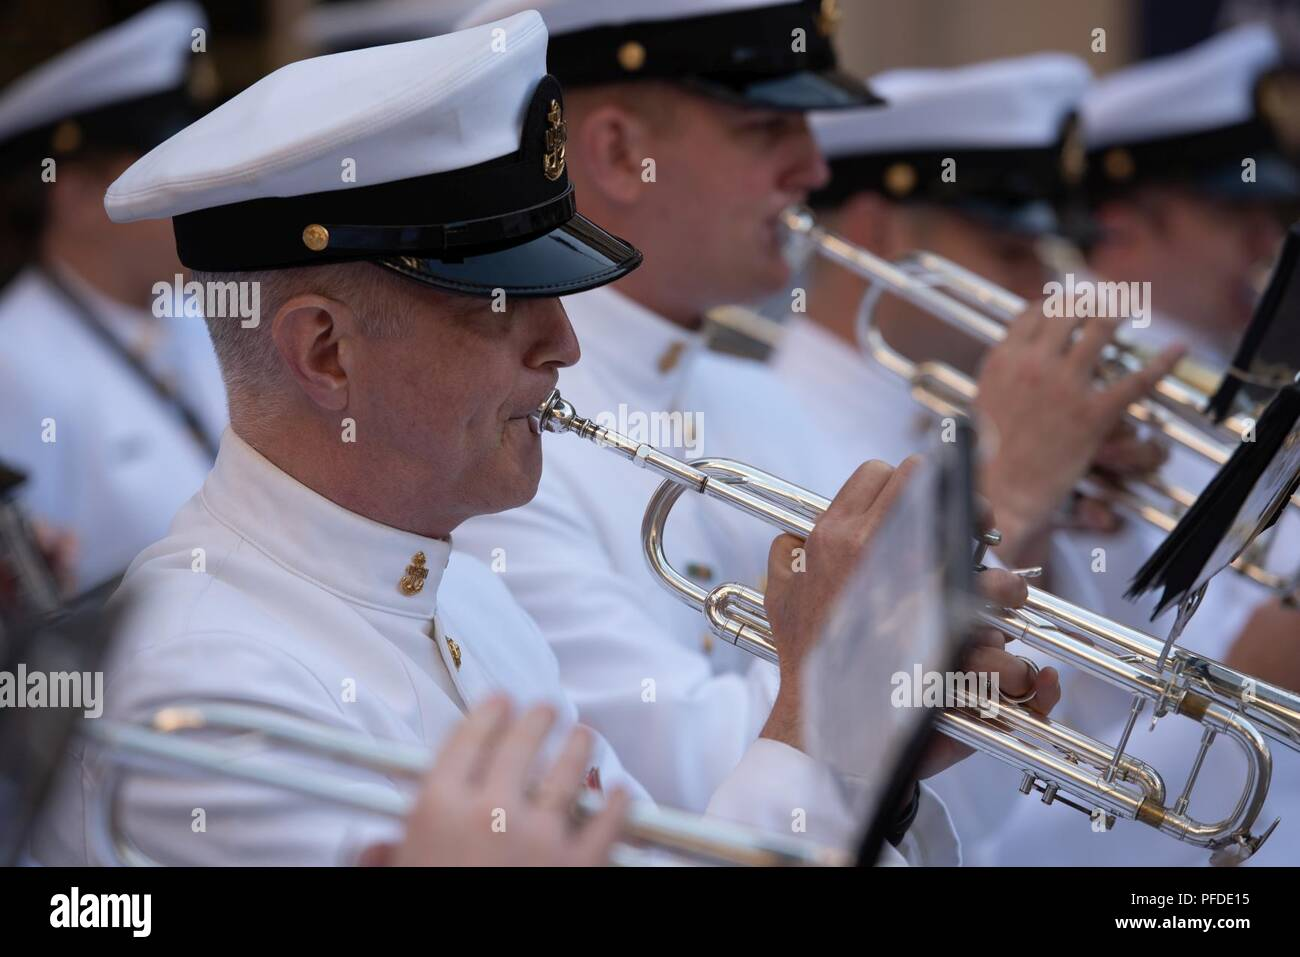 WASHINGTON (June 5, 2018) Chief Musician Stanley Curtis, trumpet instrumentalist with the U.S. Navy Ceremonial band performs at the U.S. Navy Memorial in Washington, D.C., during the commemoration of the 76th anniversary of the Battle of Midway. The Battle of Midway began on June 4 in 1942 and stands as one of the U.S. Navy's most historically significant naval battles. Fought on the high seas of the Pacific more than half a century ago, this battle altered the course of the war in the Pacific and thereby shaped the outcome of world events. - Stock Image